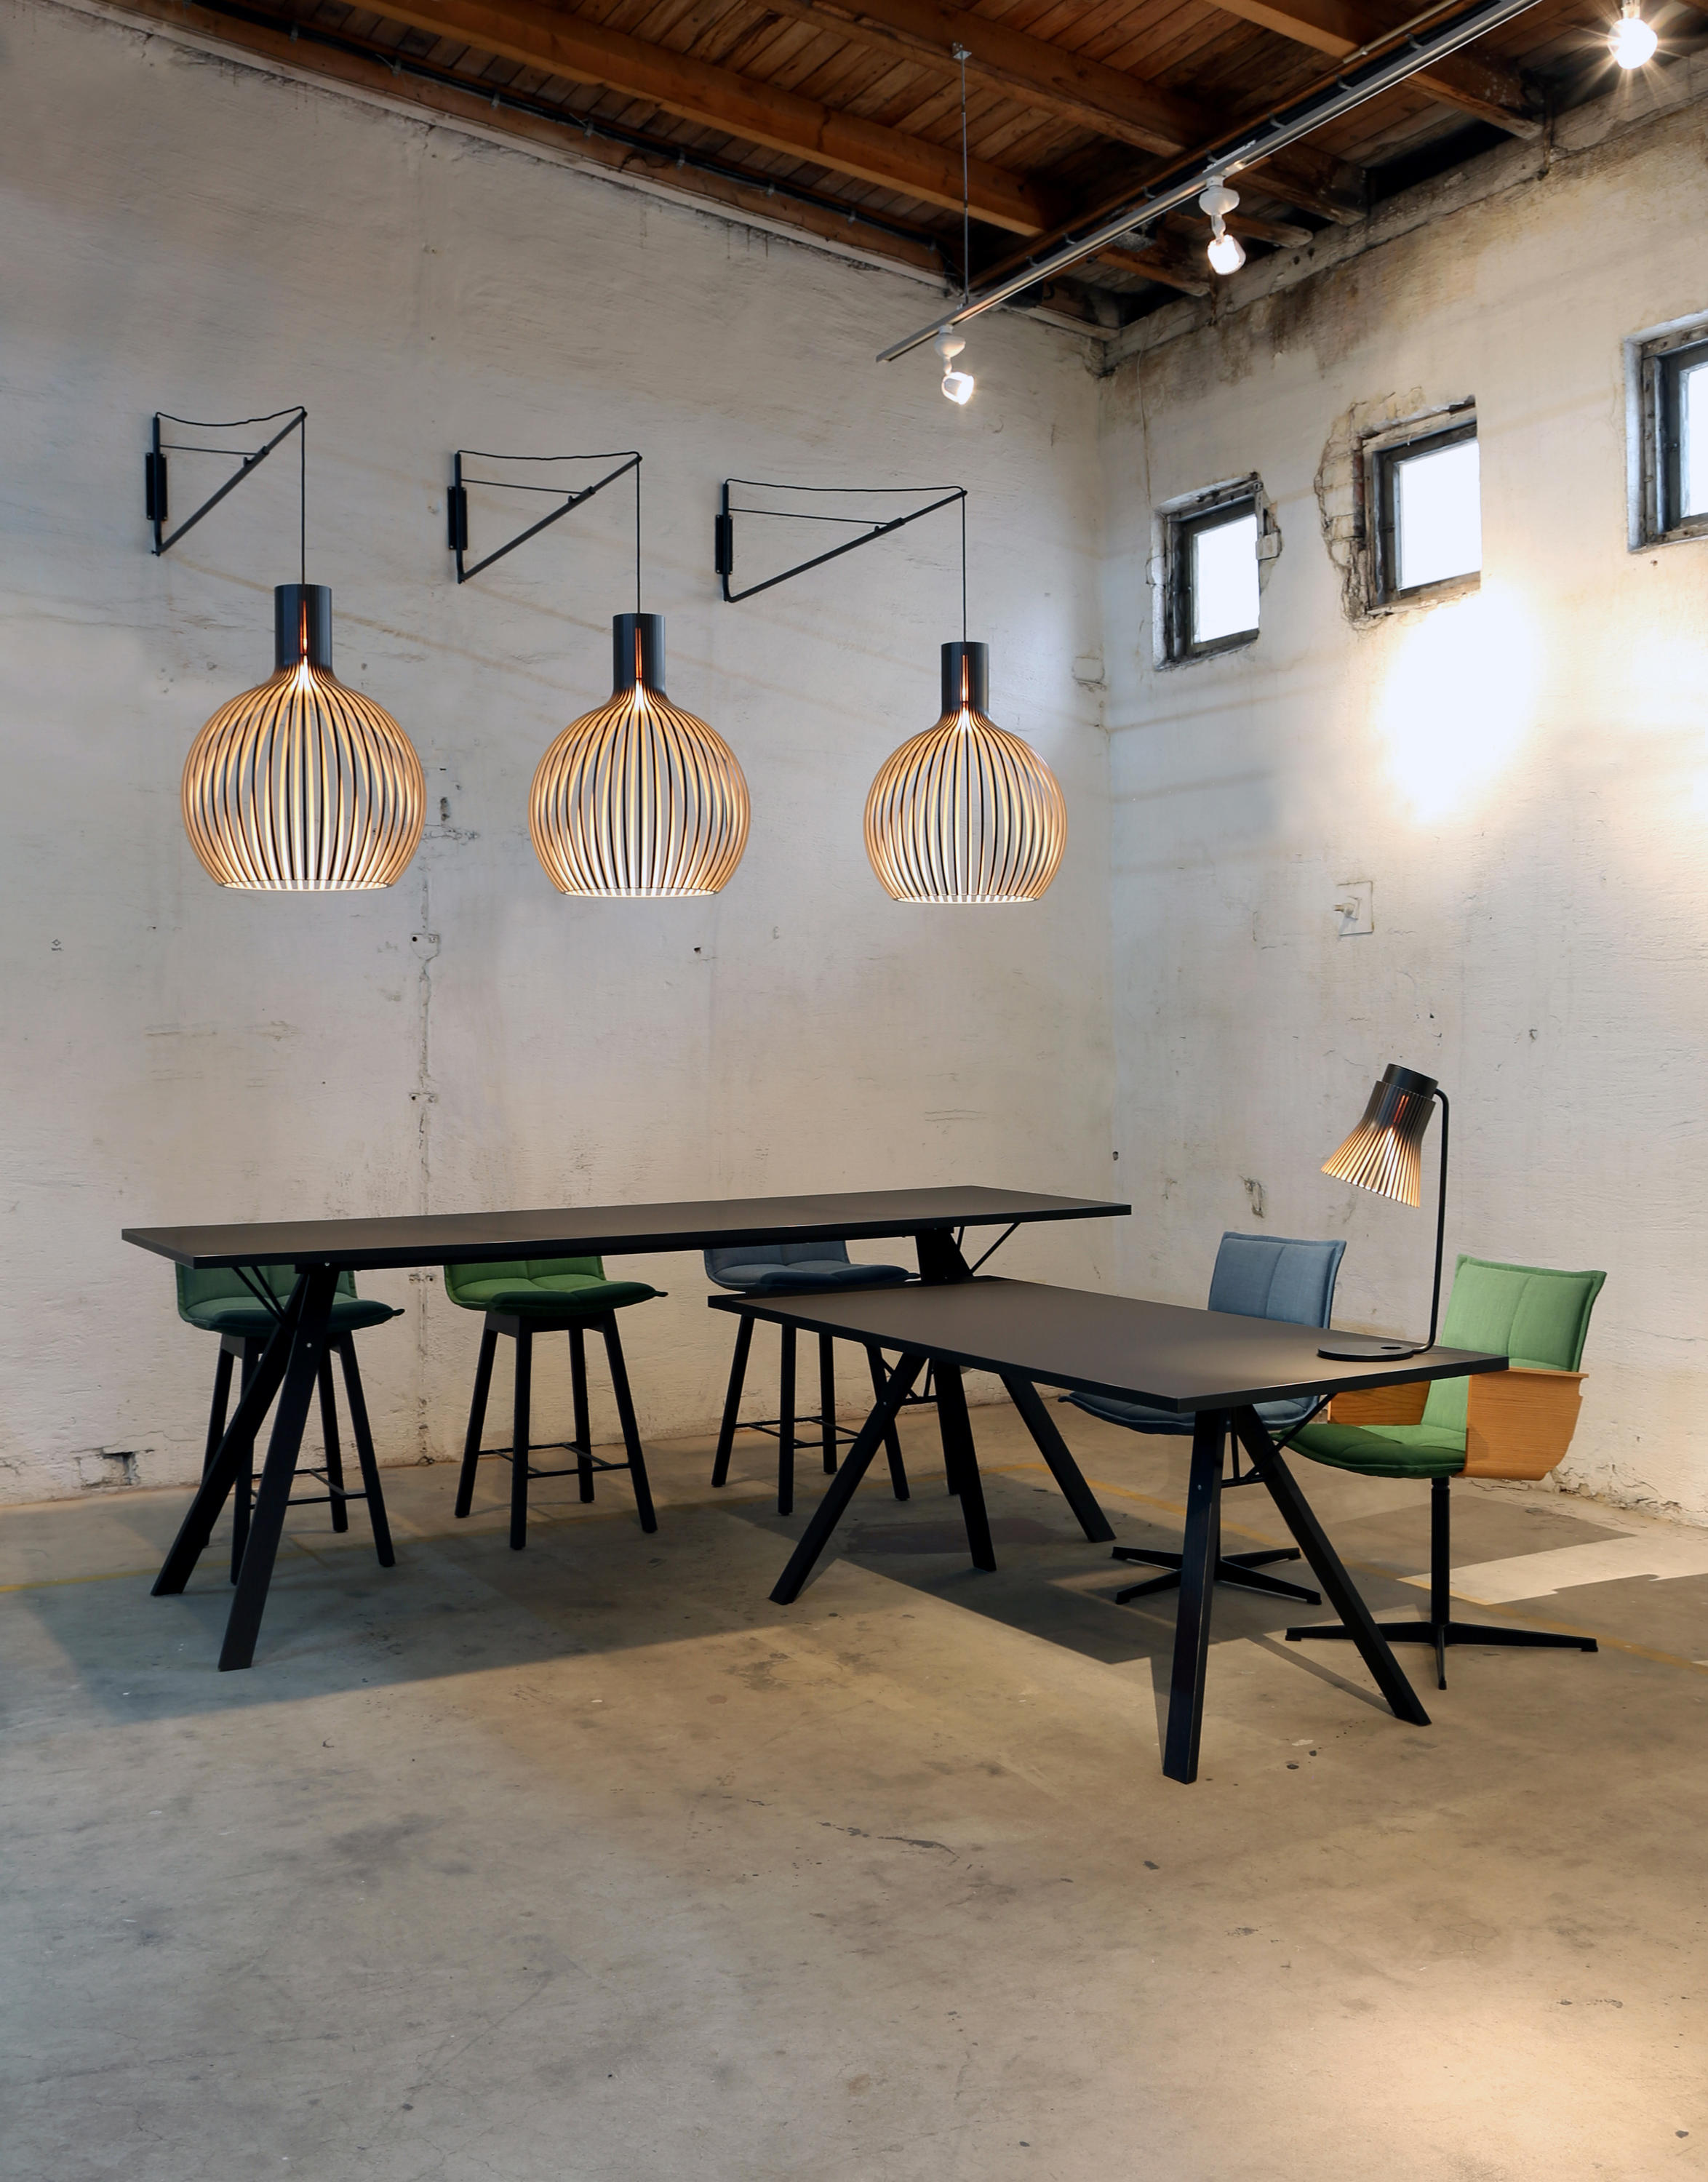 LAB CHAIR XL - Lounge chairs from Inno | Architonic